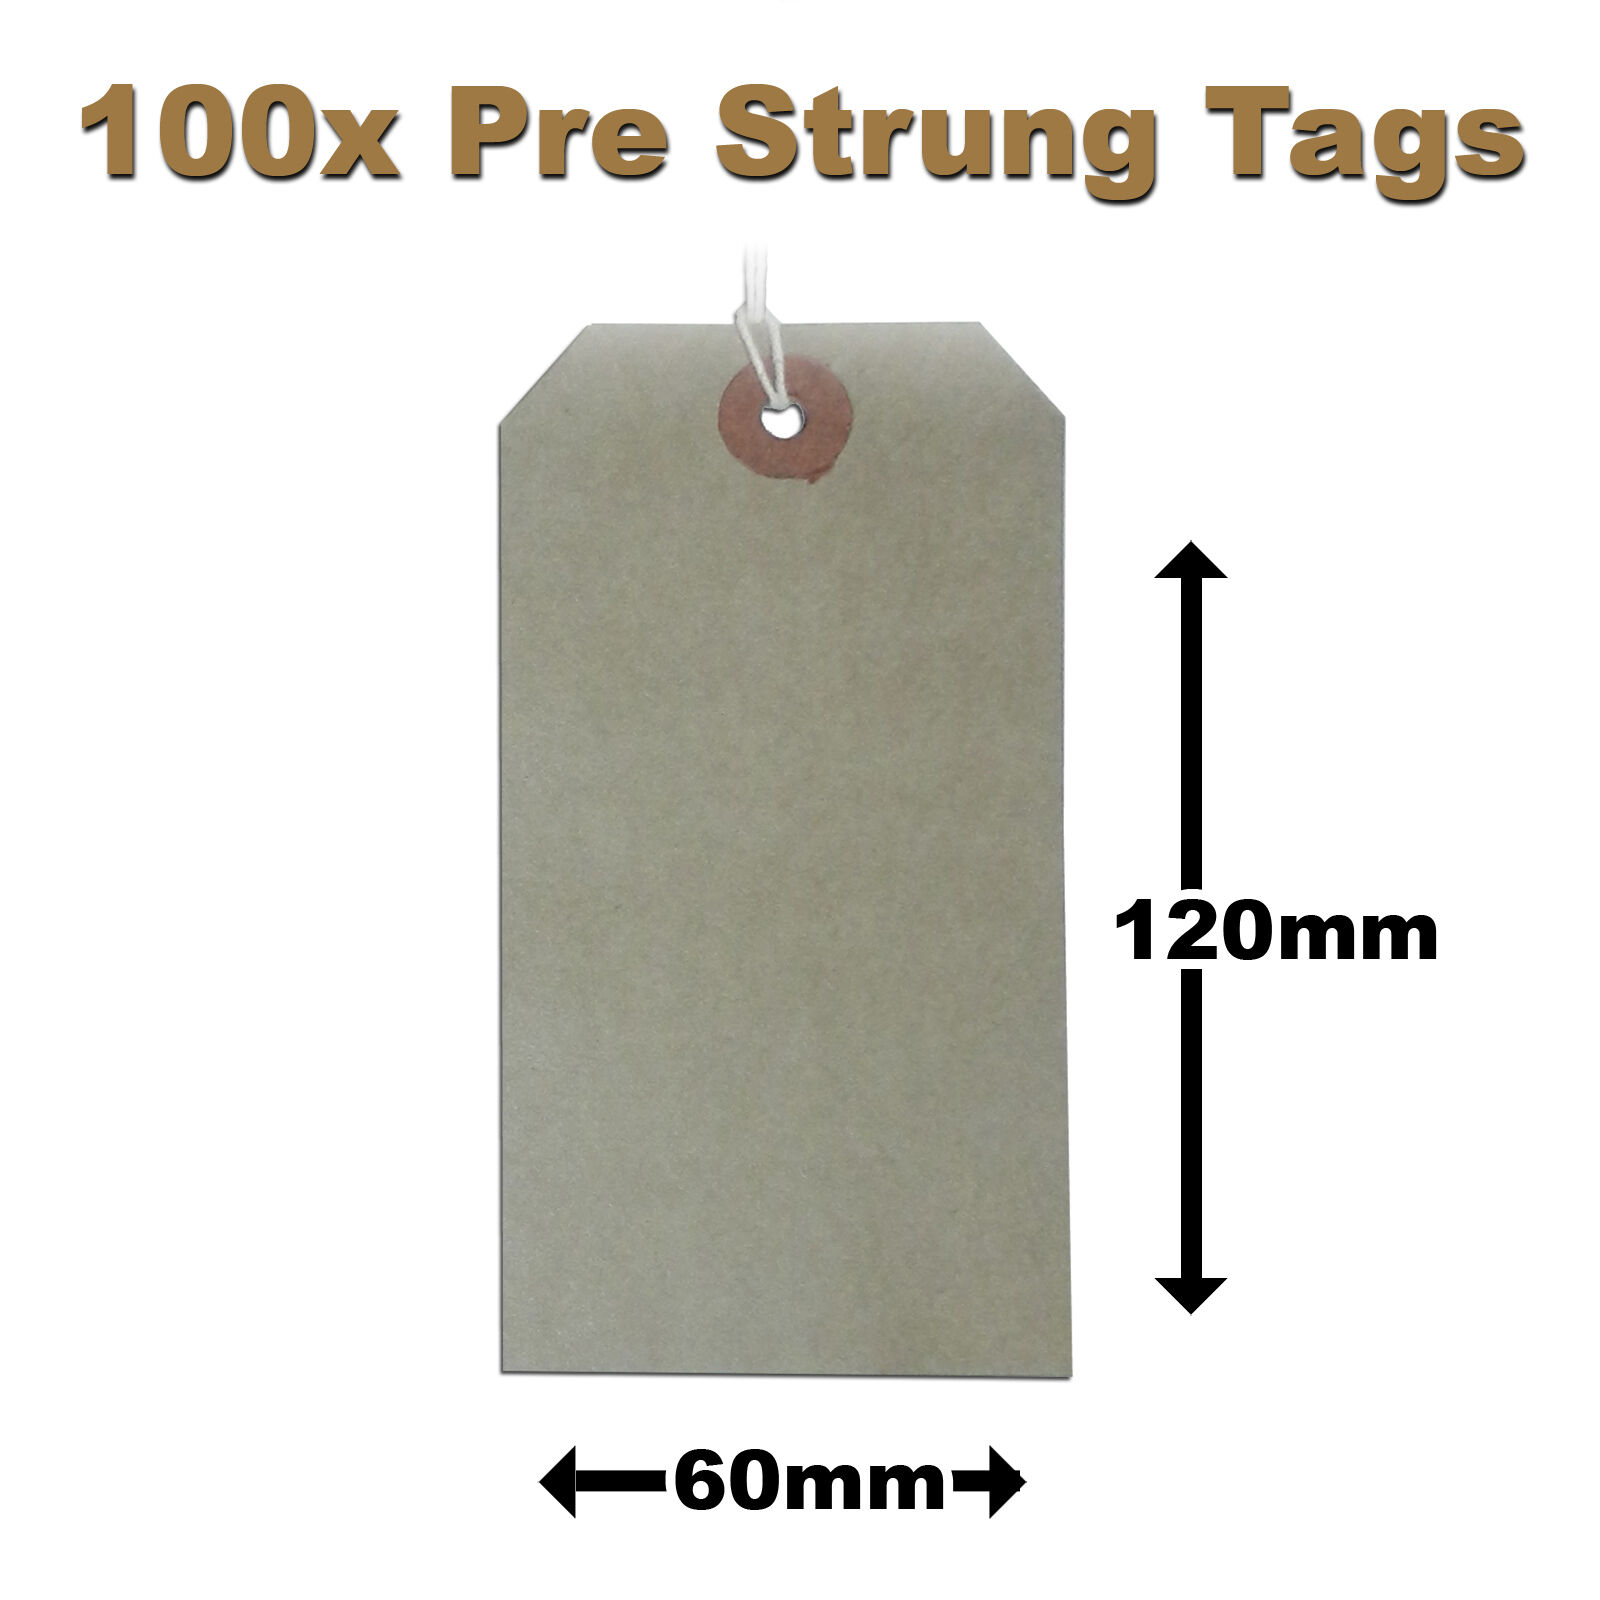 Pre-Strung Brown / Manilla / Buff Price Tags Tickets 120mm x 60mm 5MS x 100 (H3)